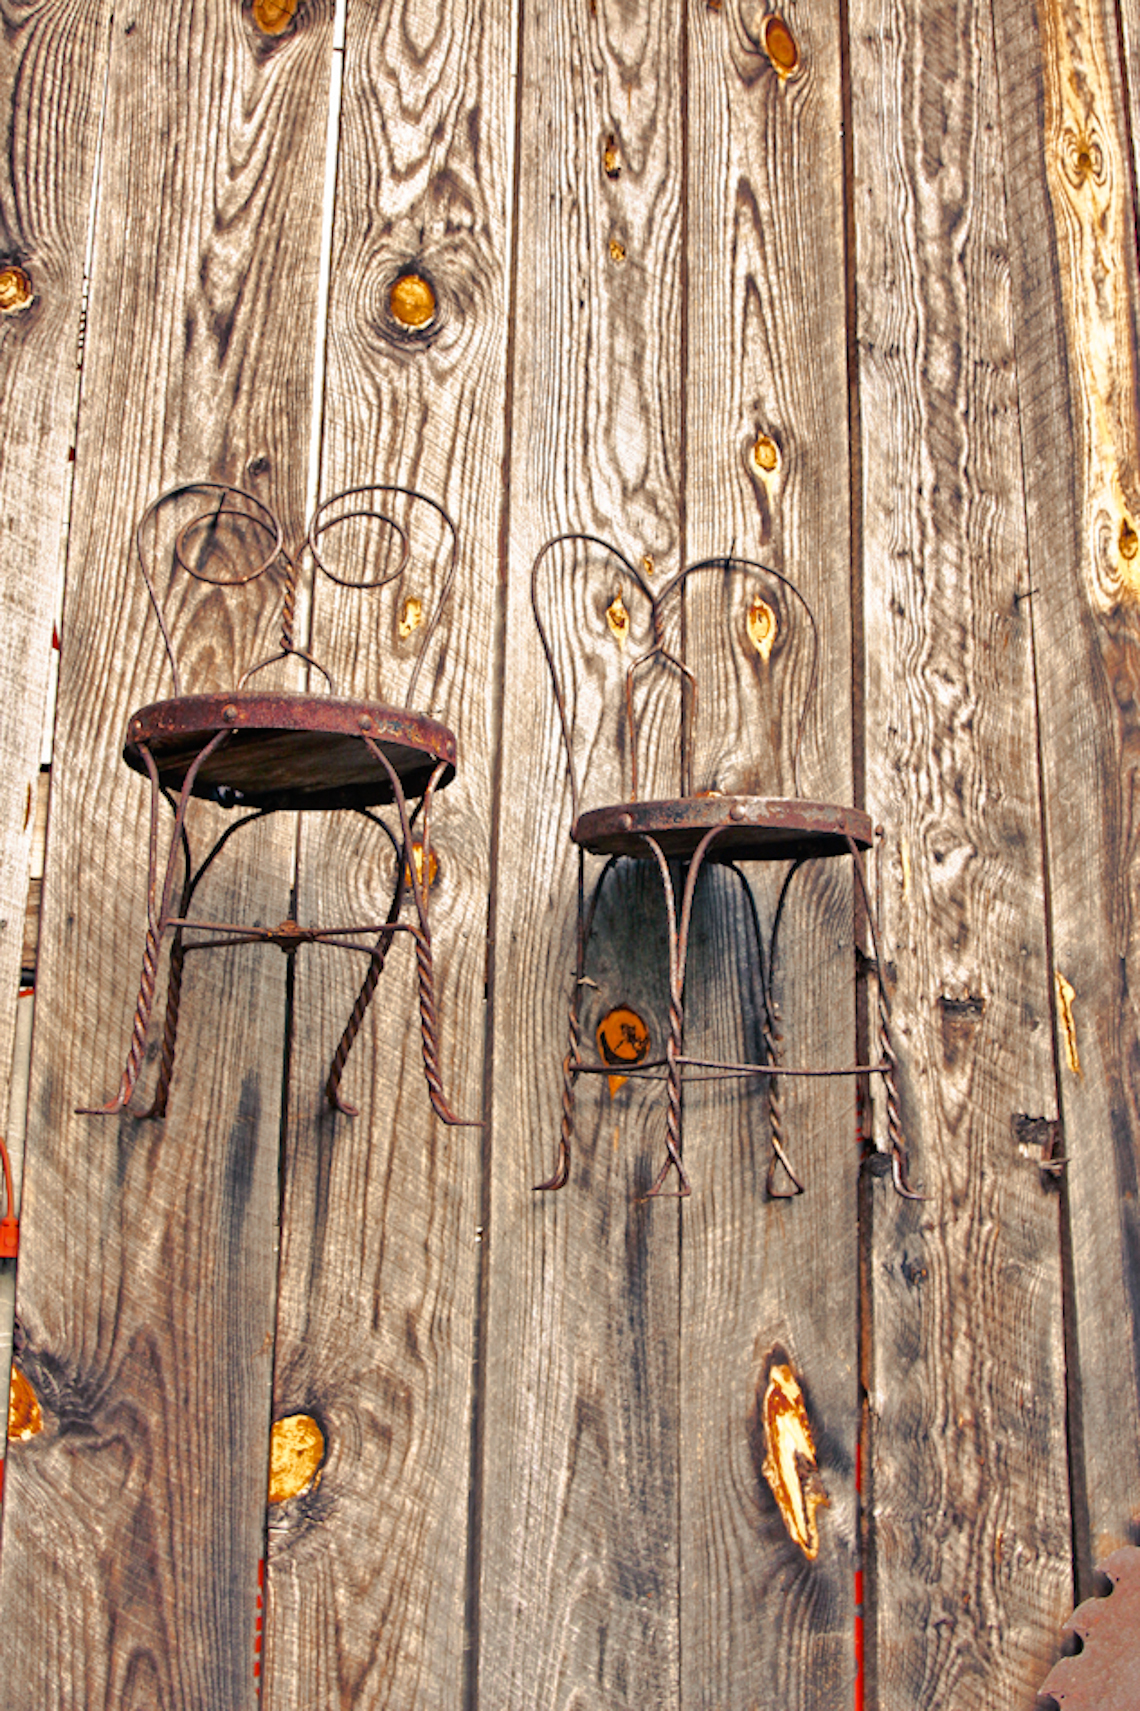 old-wrought-iron-chairs-hanging-on-barn-